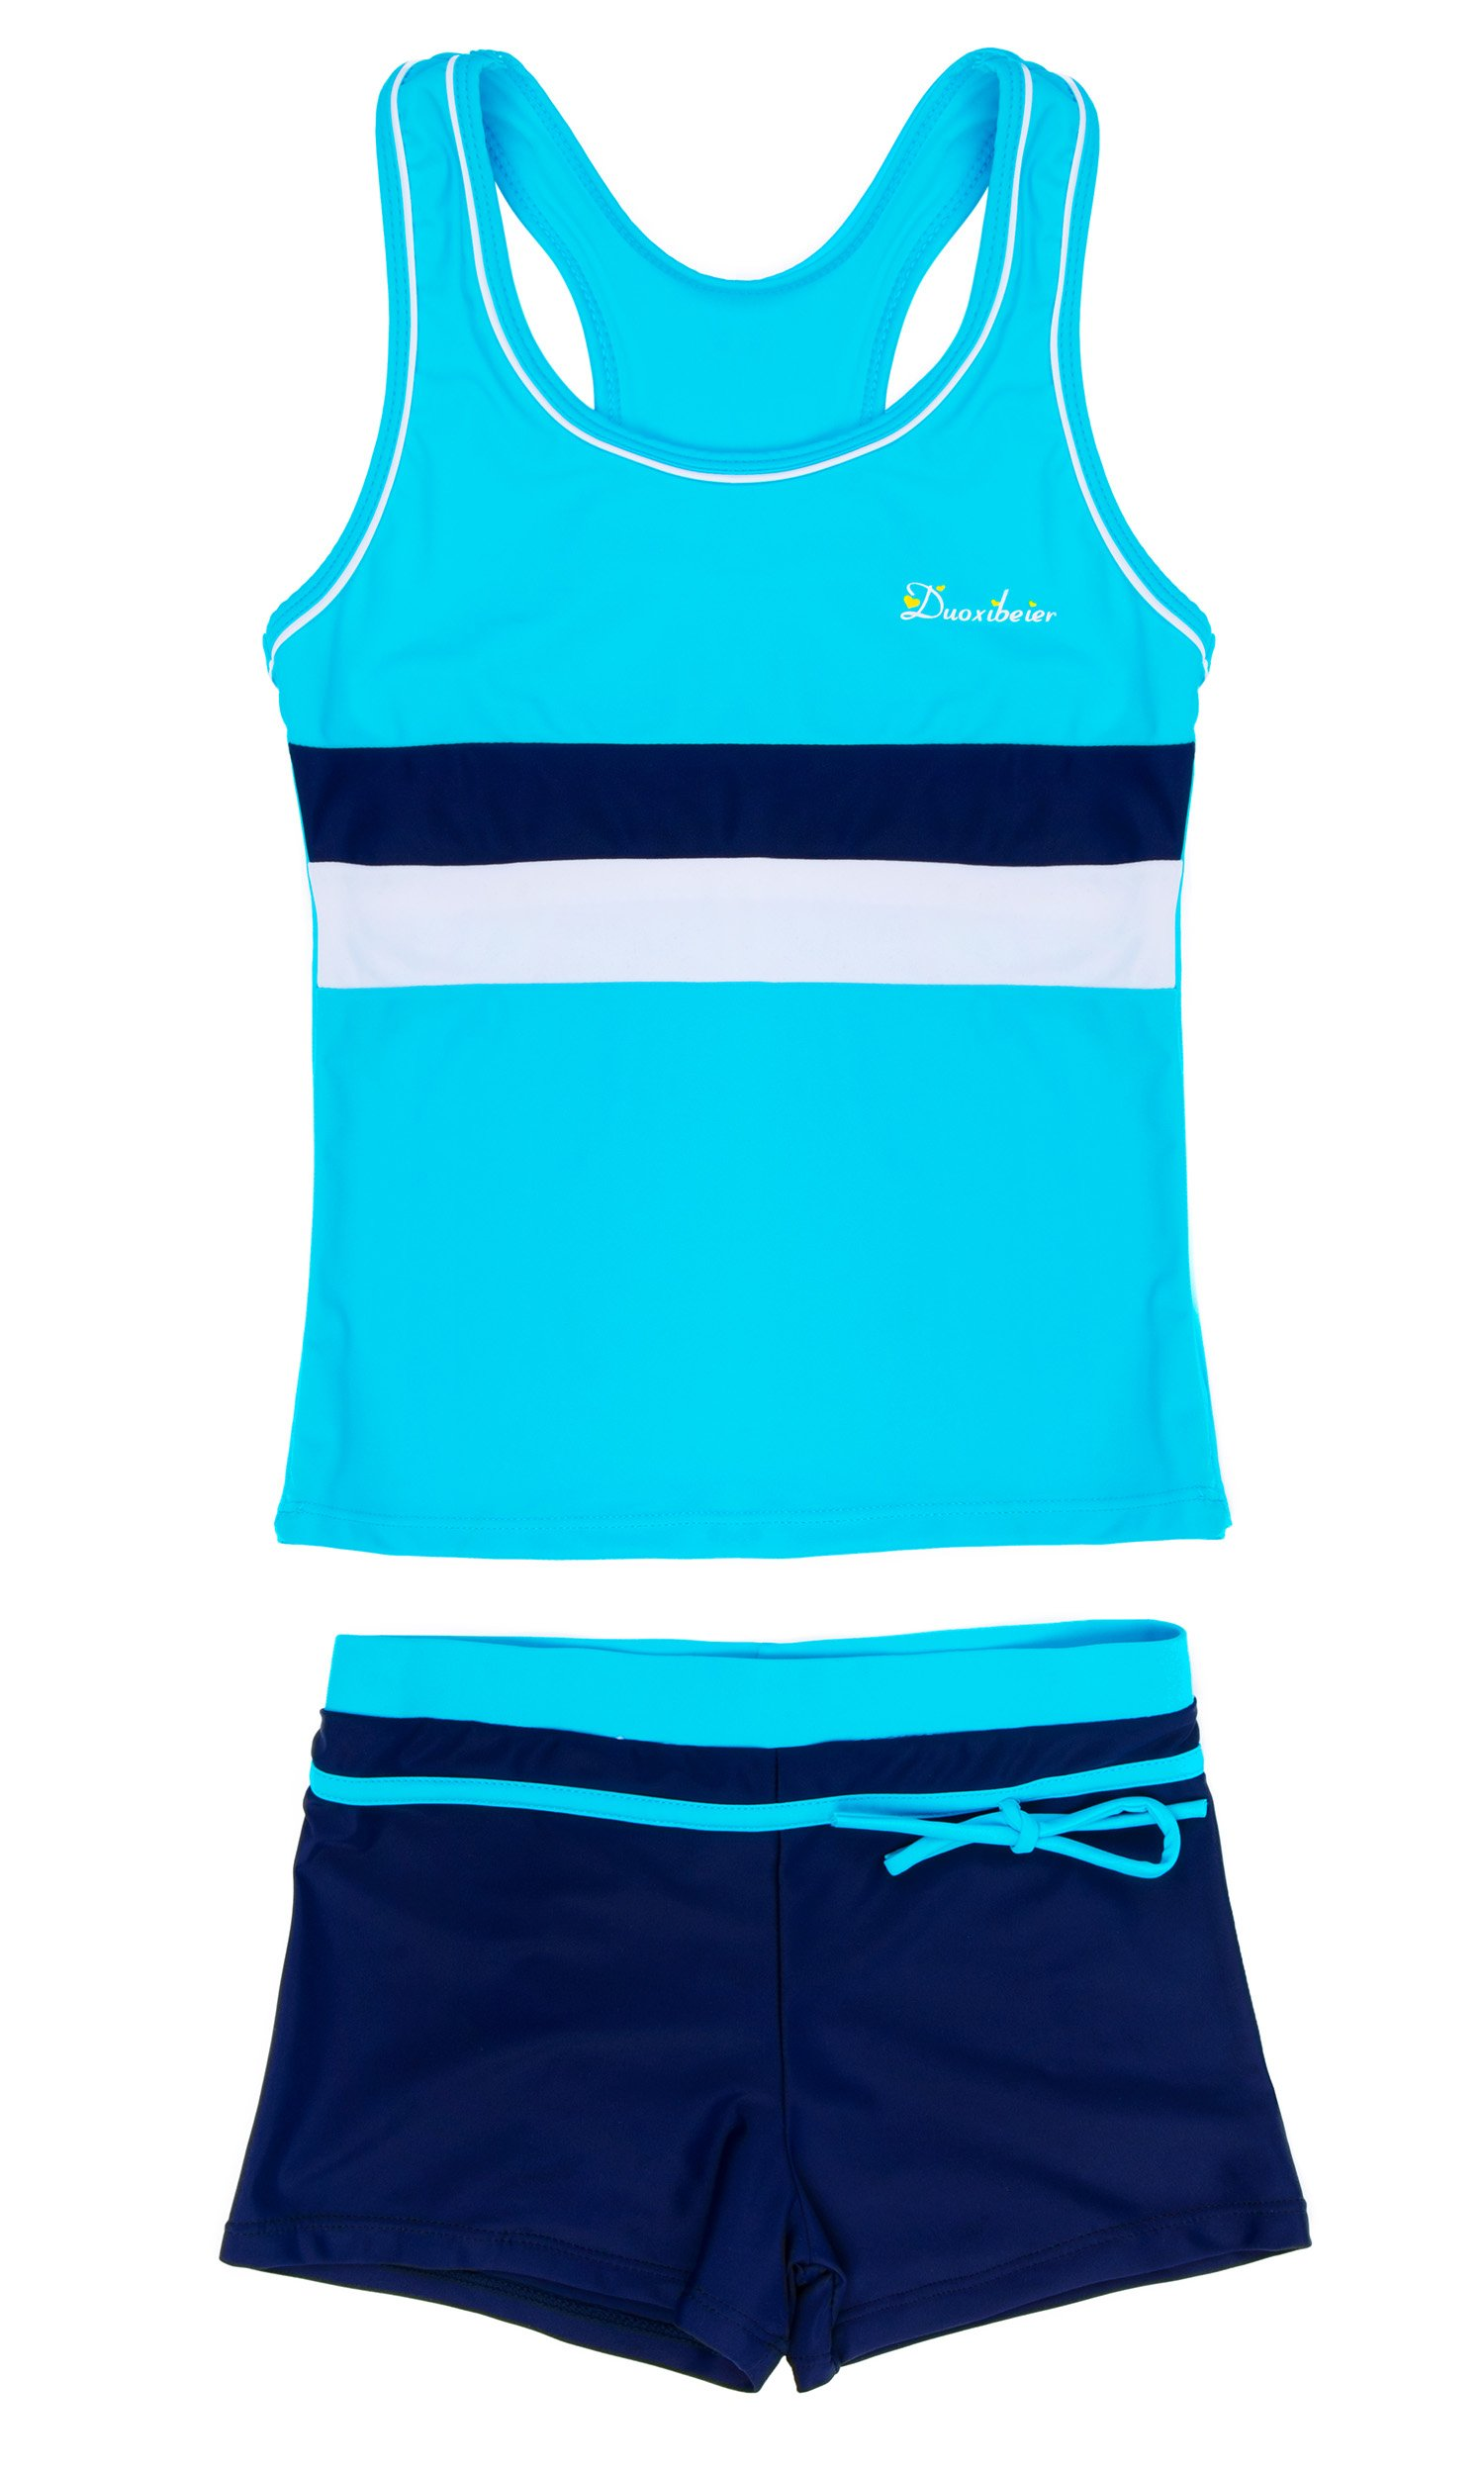 KABETY Little Girls Summer Two Piece Boyshort Fashion Tankini Swimsuit (Blue, 12-13=4XL)